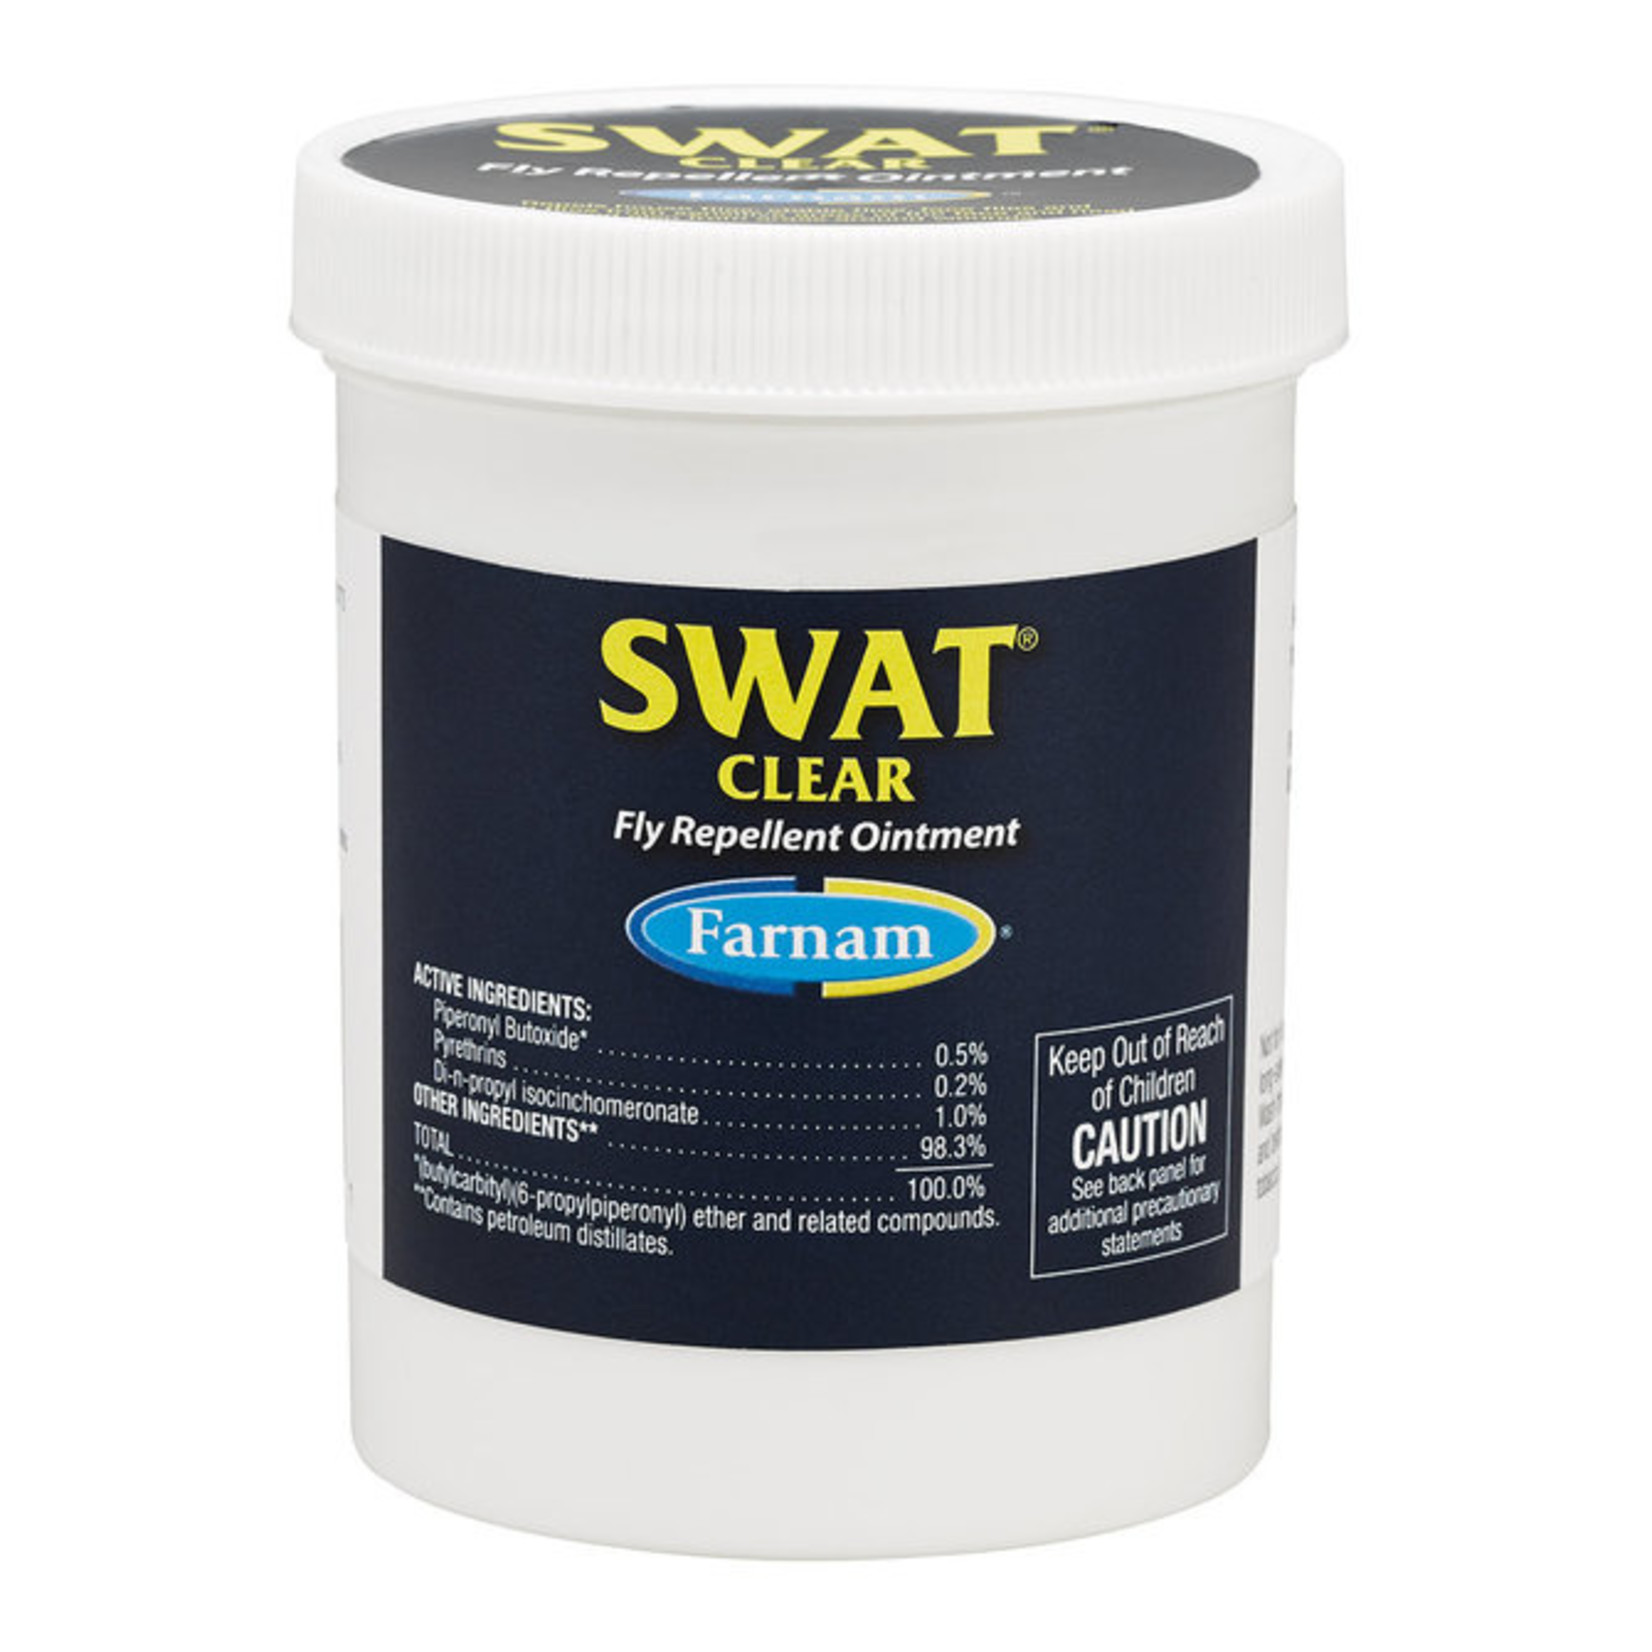 Farnam Swat Clear Fly Repellant Ointment 7oz